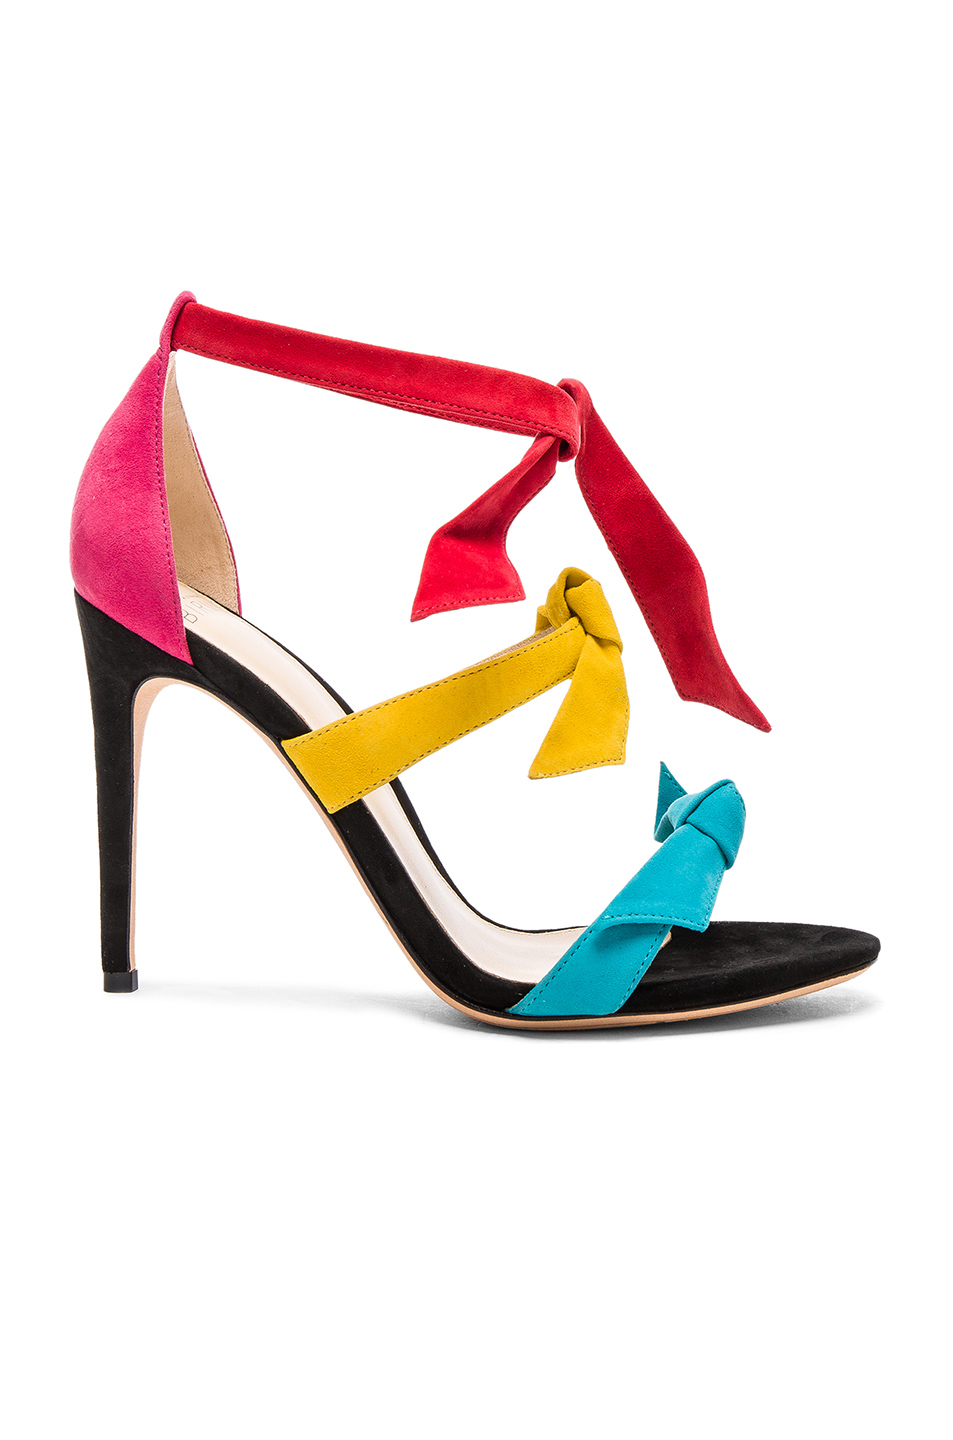 Alexandre Birman Suede Mary Heels in Abstract,Black,Green,Pink,Red,Yellow